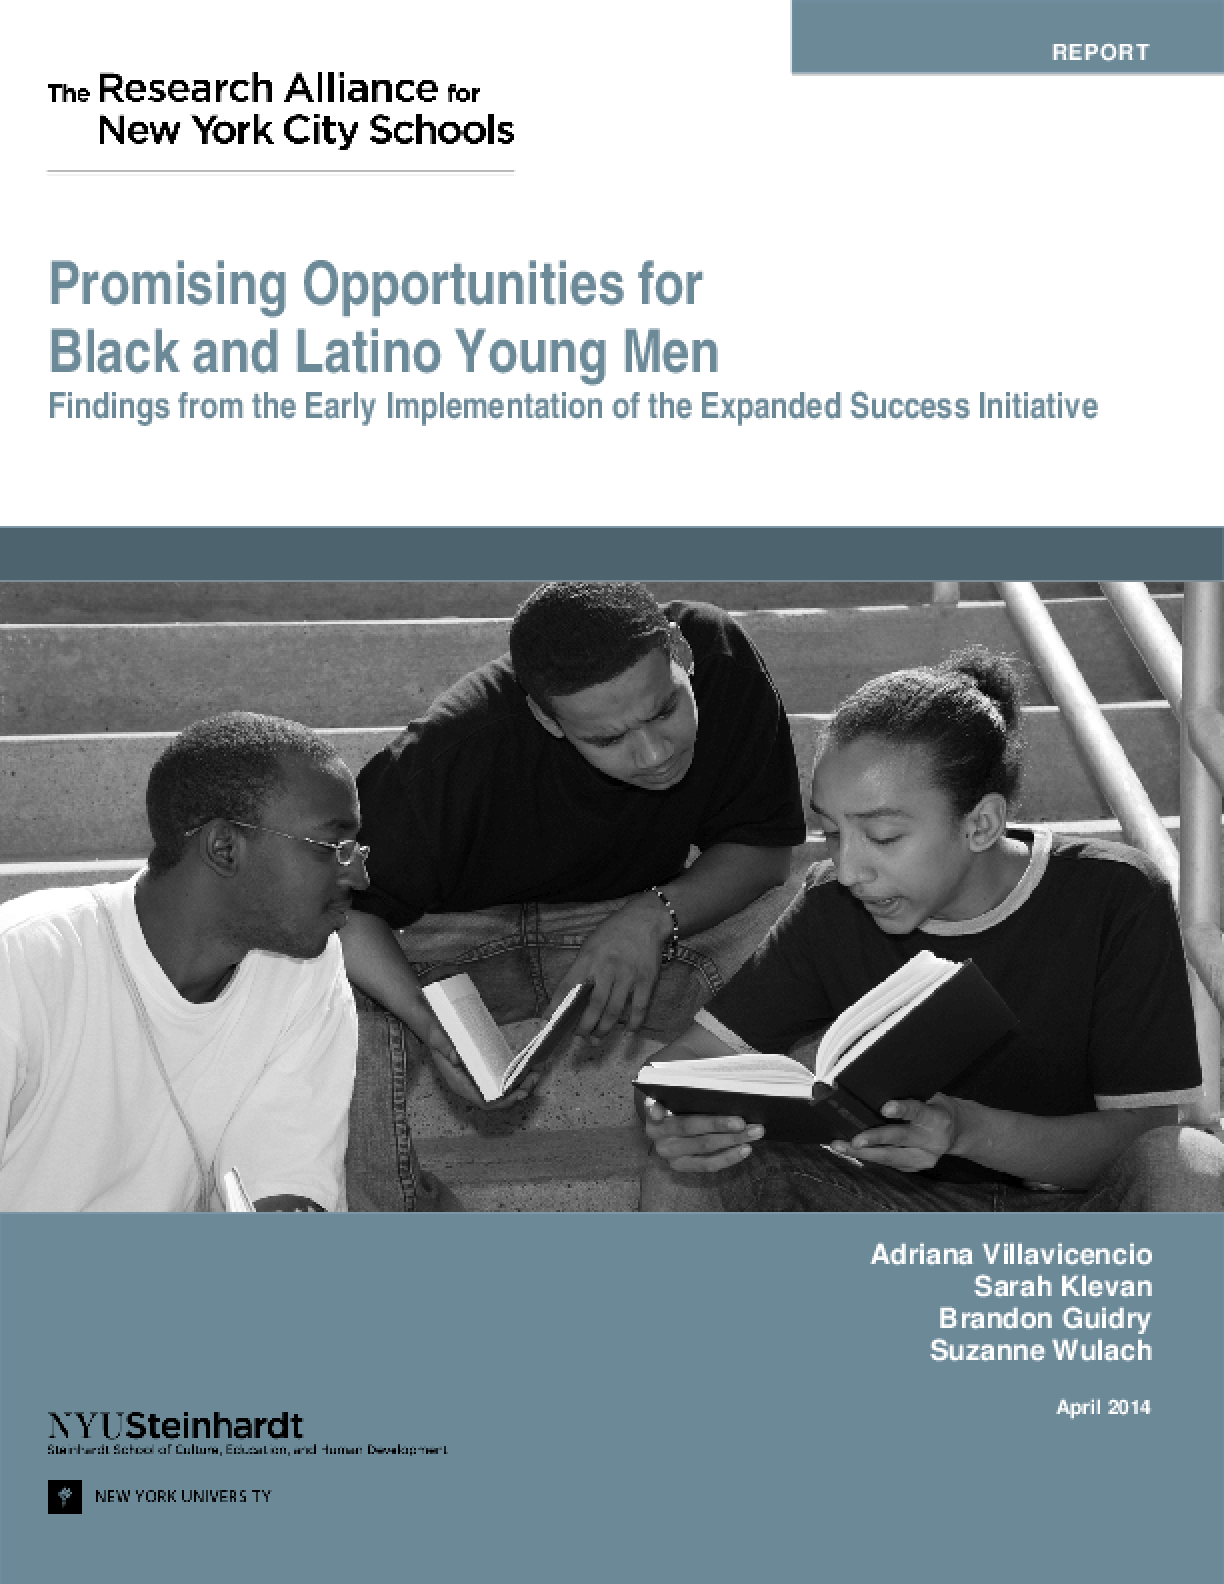 Promising Opportunities for Black and Latino Young Men: Findings from the Early Implementation of the Expanded Success Initiative